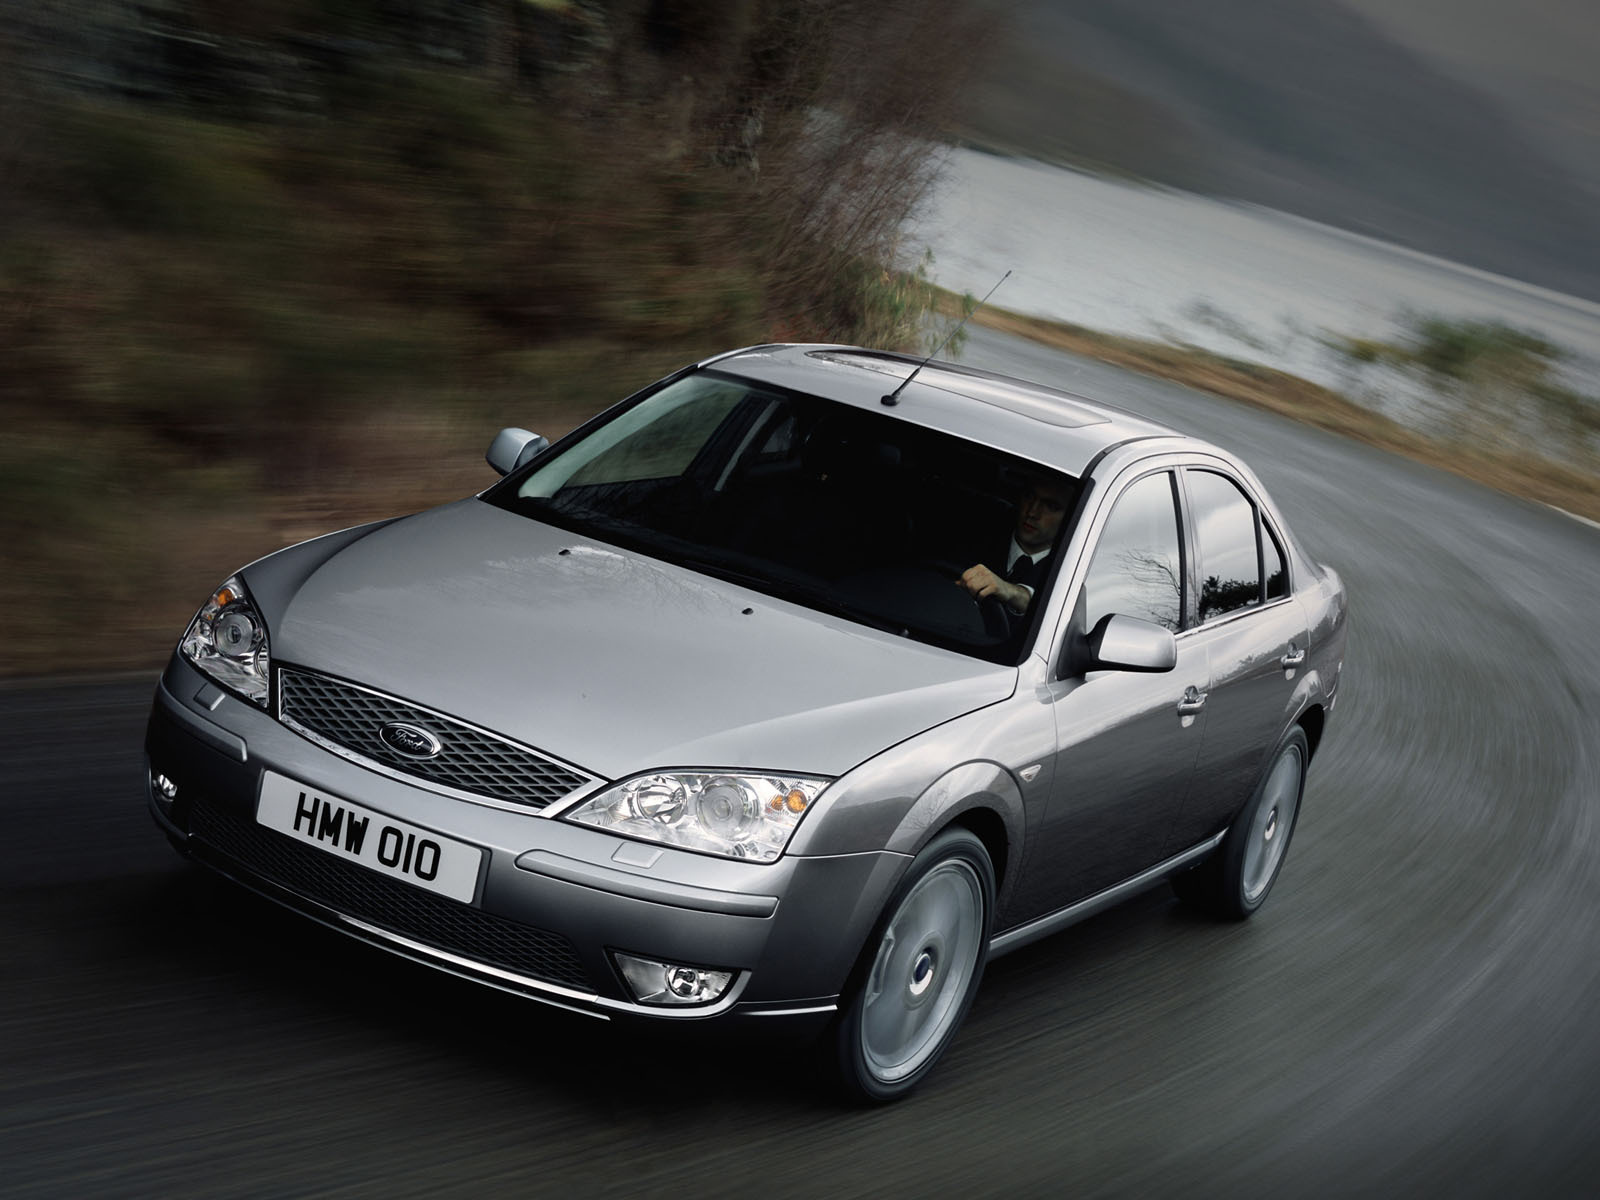 Ford images 2005 Ford Mondeo HD wallpaper and background photos 1600x1200